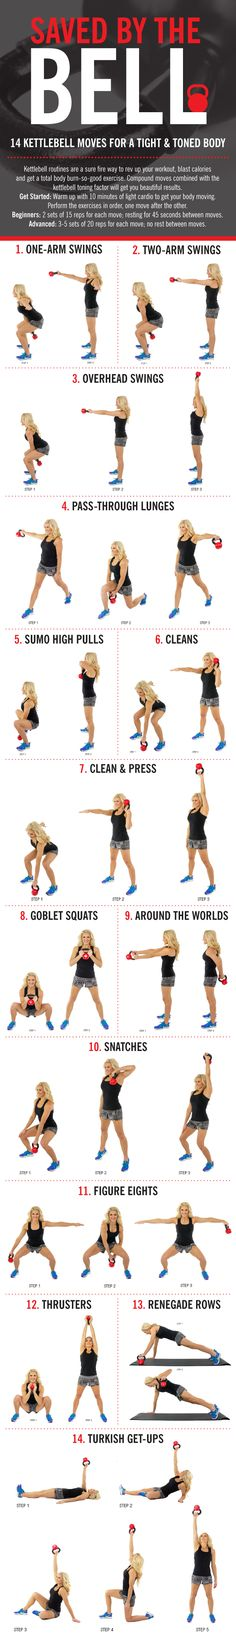 Kettlebell Moves for an All-Over Body Calorie Torcher Get ready to feel the burn with this kettlebell workout.Get ready to feel the burn with this kettlebell workout. Fitness Workouts, At Home Workouts, Ball Workouts, Cardio Workouts, Body Fitness, Fitness Diet, Health Fitness, Gym Body, Fitness Weightloss